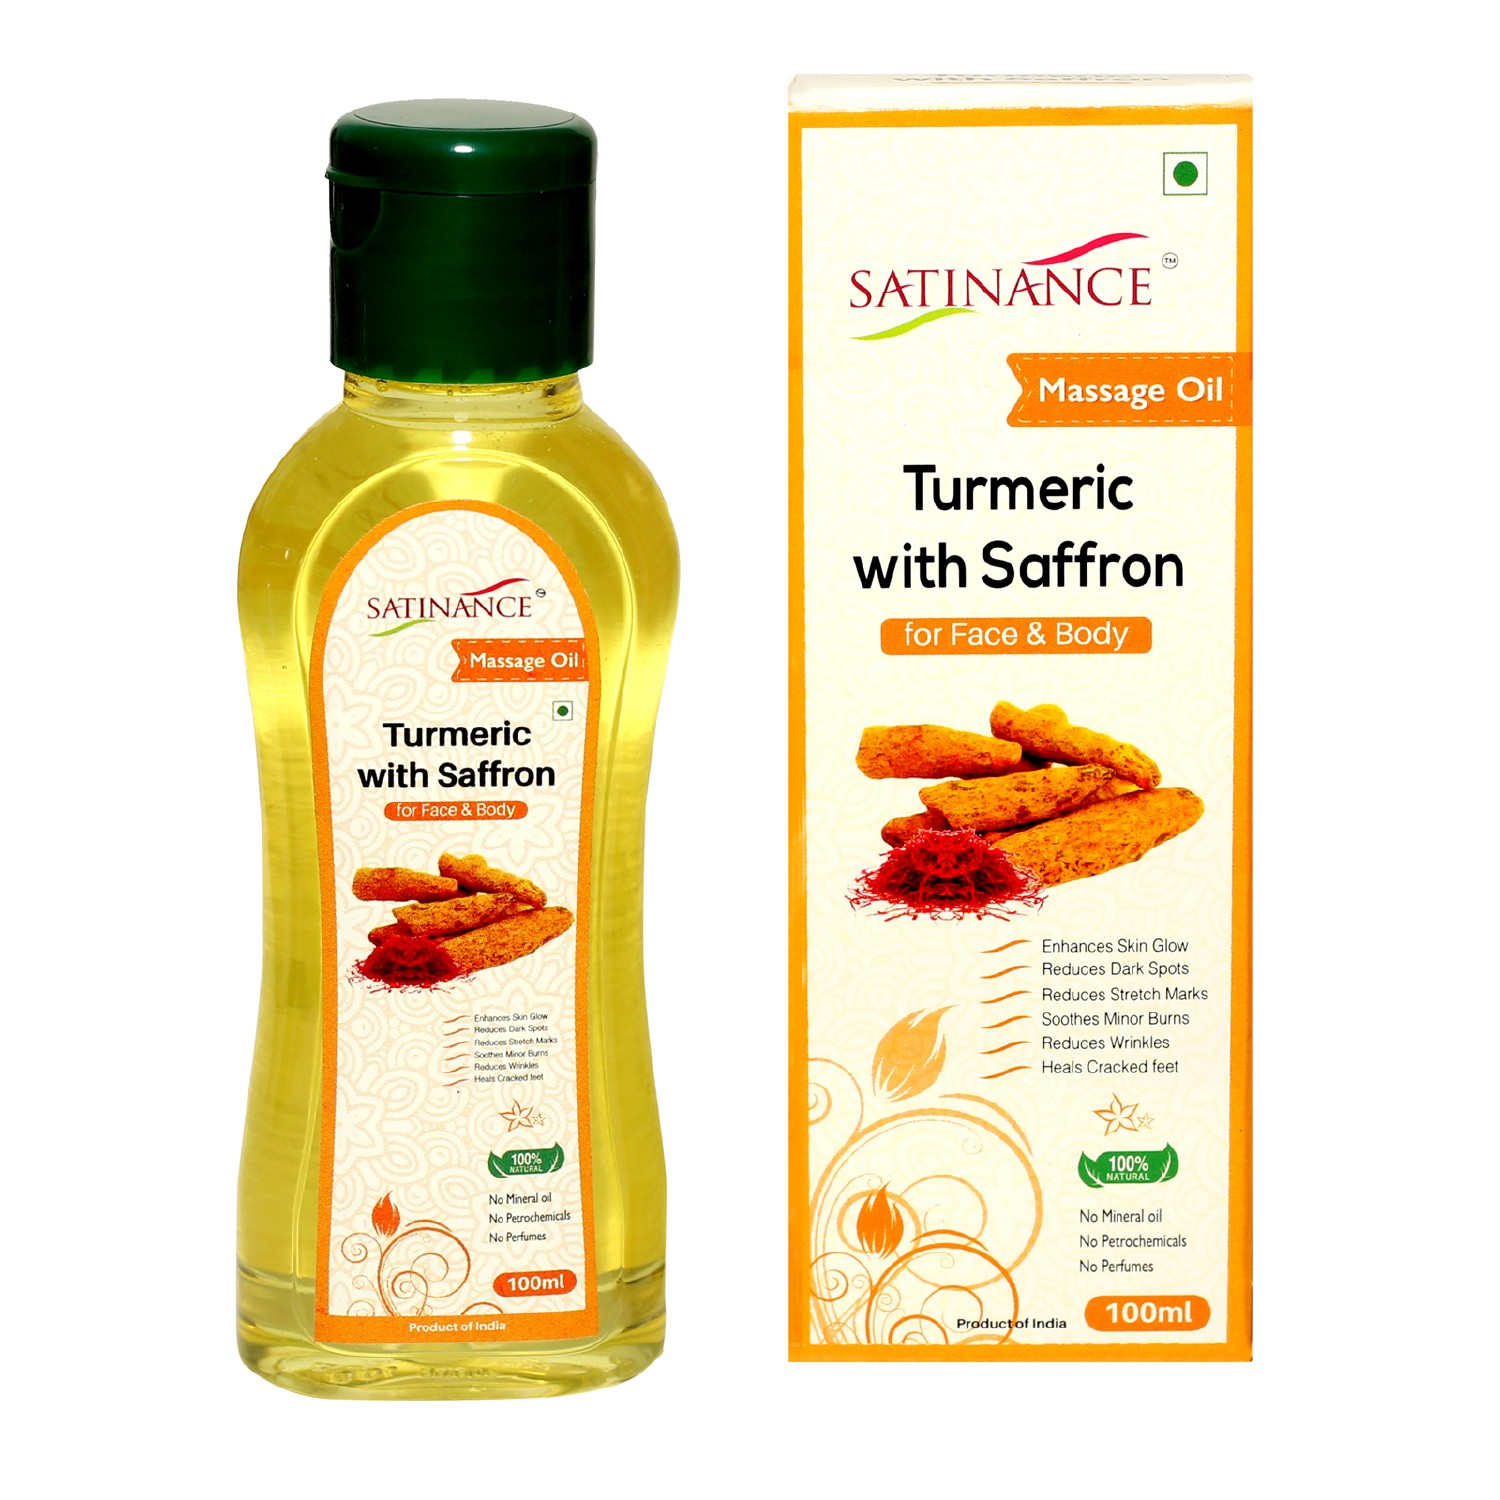 Turmeric With Saffron Massage oil 100ml – (No Mineral Oil, No Petrochemicals, No Perfumes)